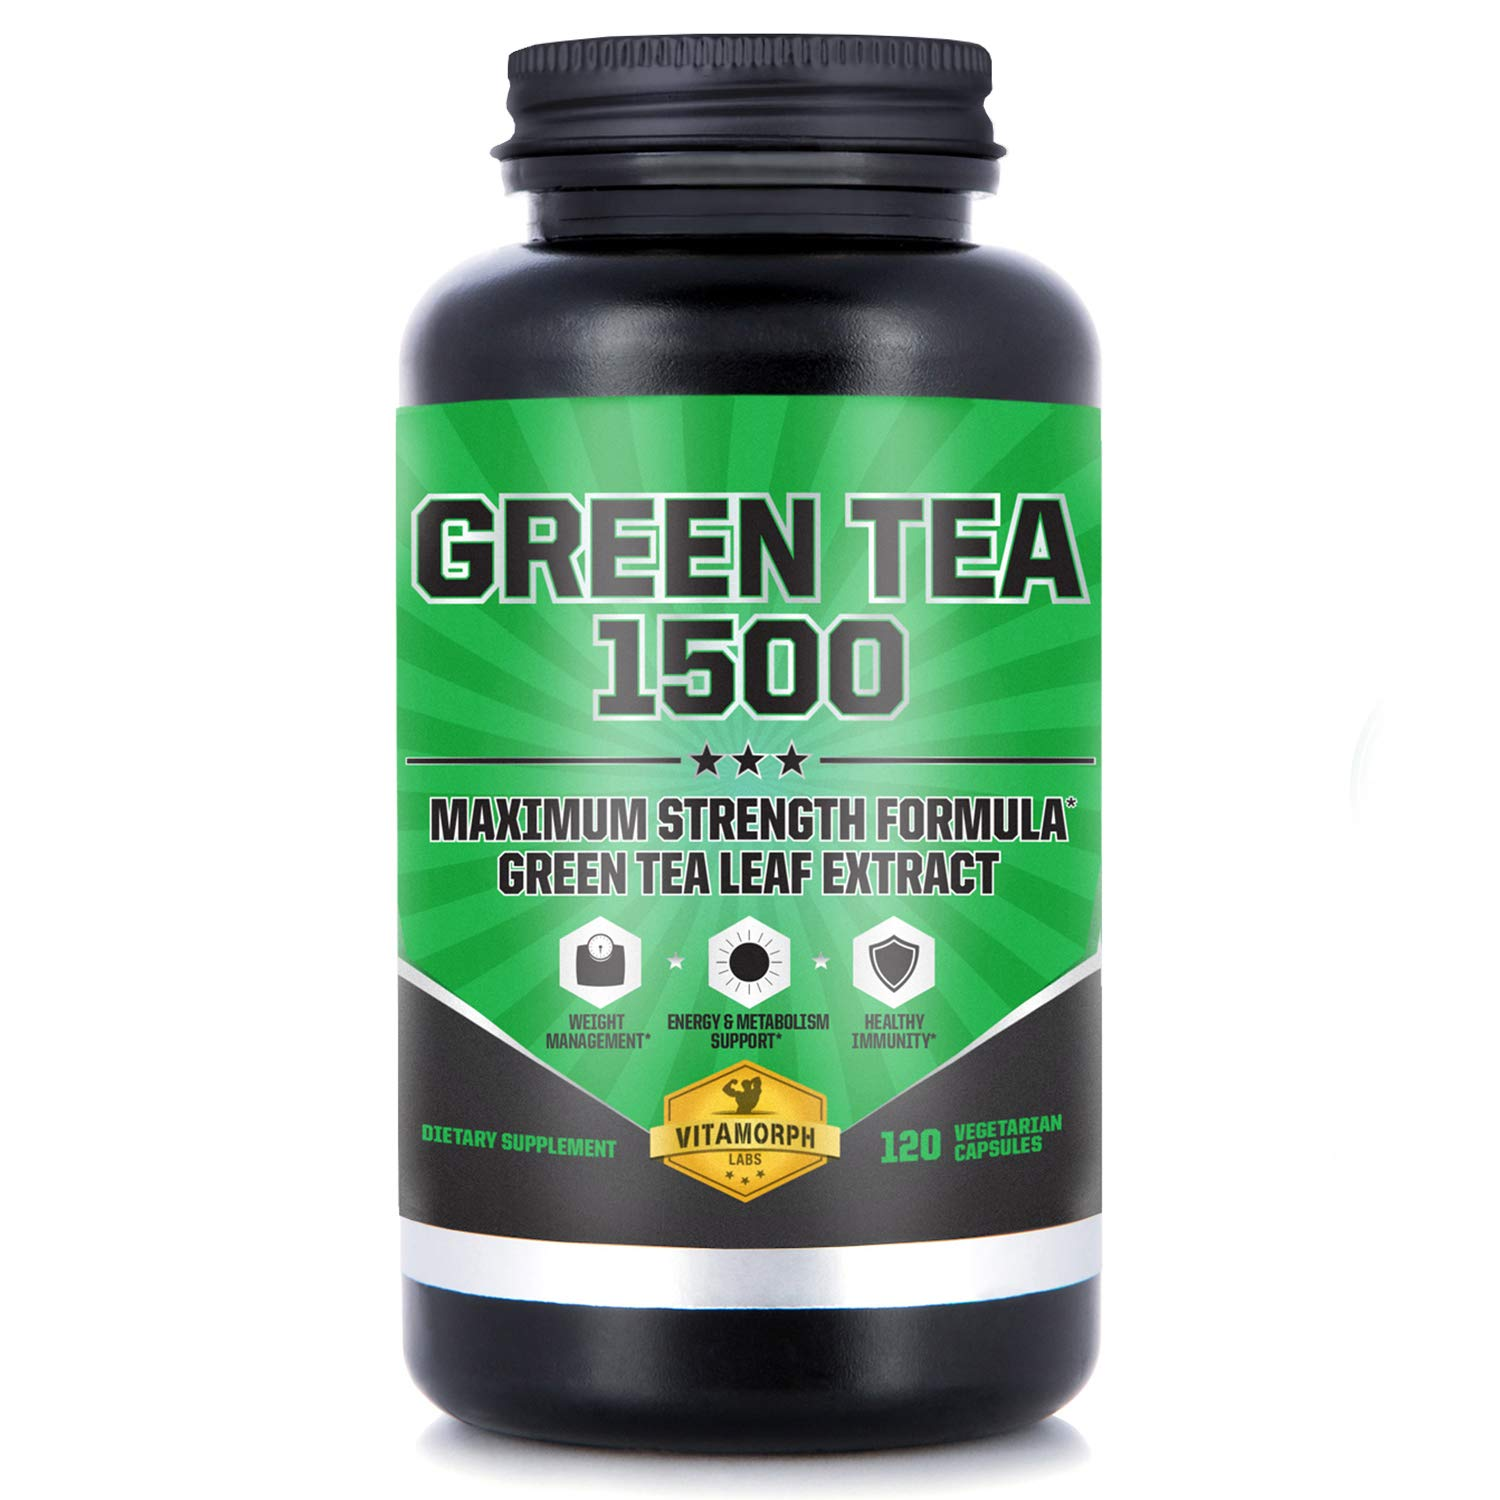 Green Tea 1500 - Egcg Green Tea Extract Supplement, Maximum Strength Egcg Green Tea Extract Capsules for a Metabolism Boost and Daily Energy by Vitamorph Labs - 120 Vegetarian Capsules by Vitamorph Labs